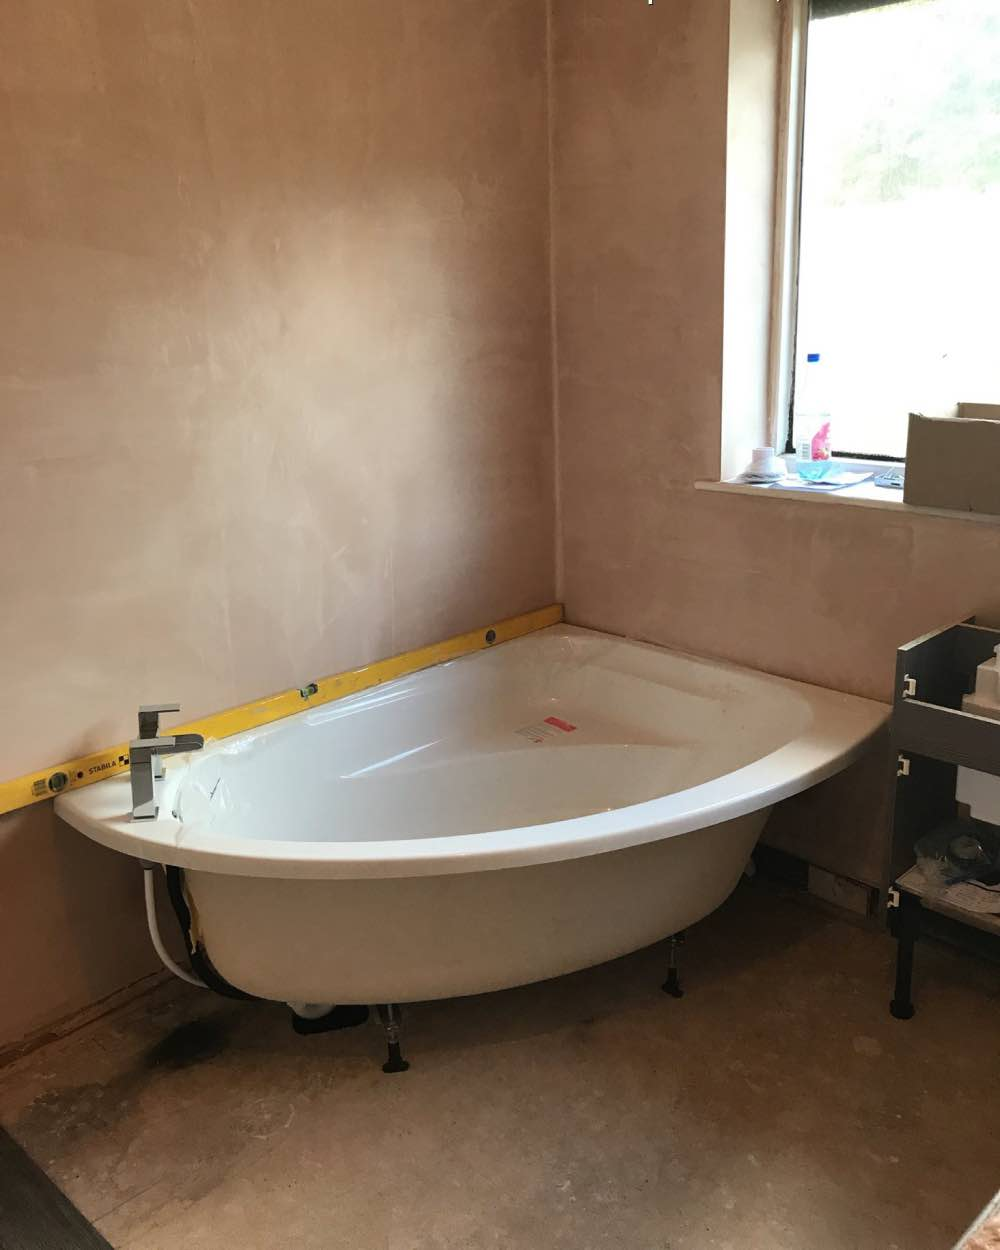 Bathroom installation Project in Shaw from Wrights Interiors